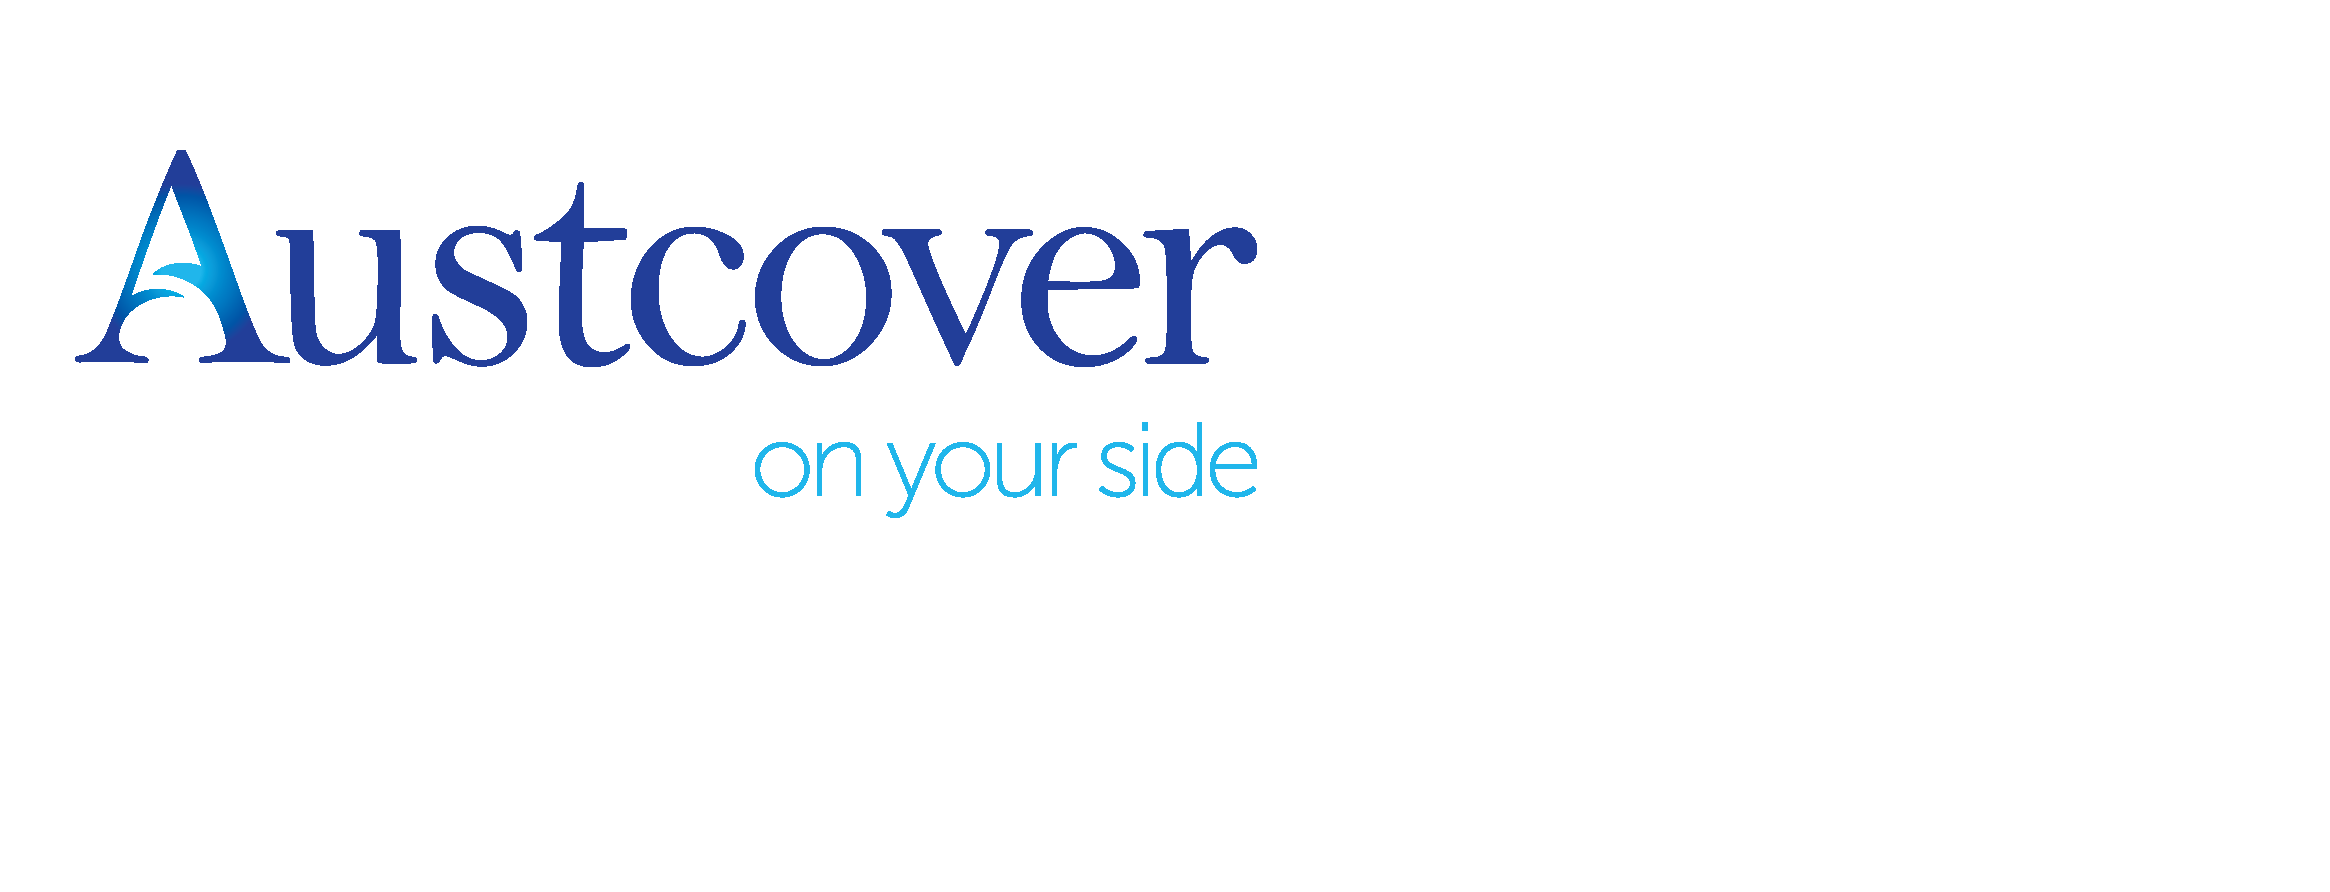 Austcover_logo_CMYK_cropped.png